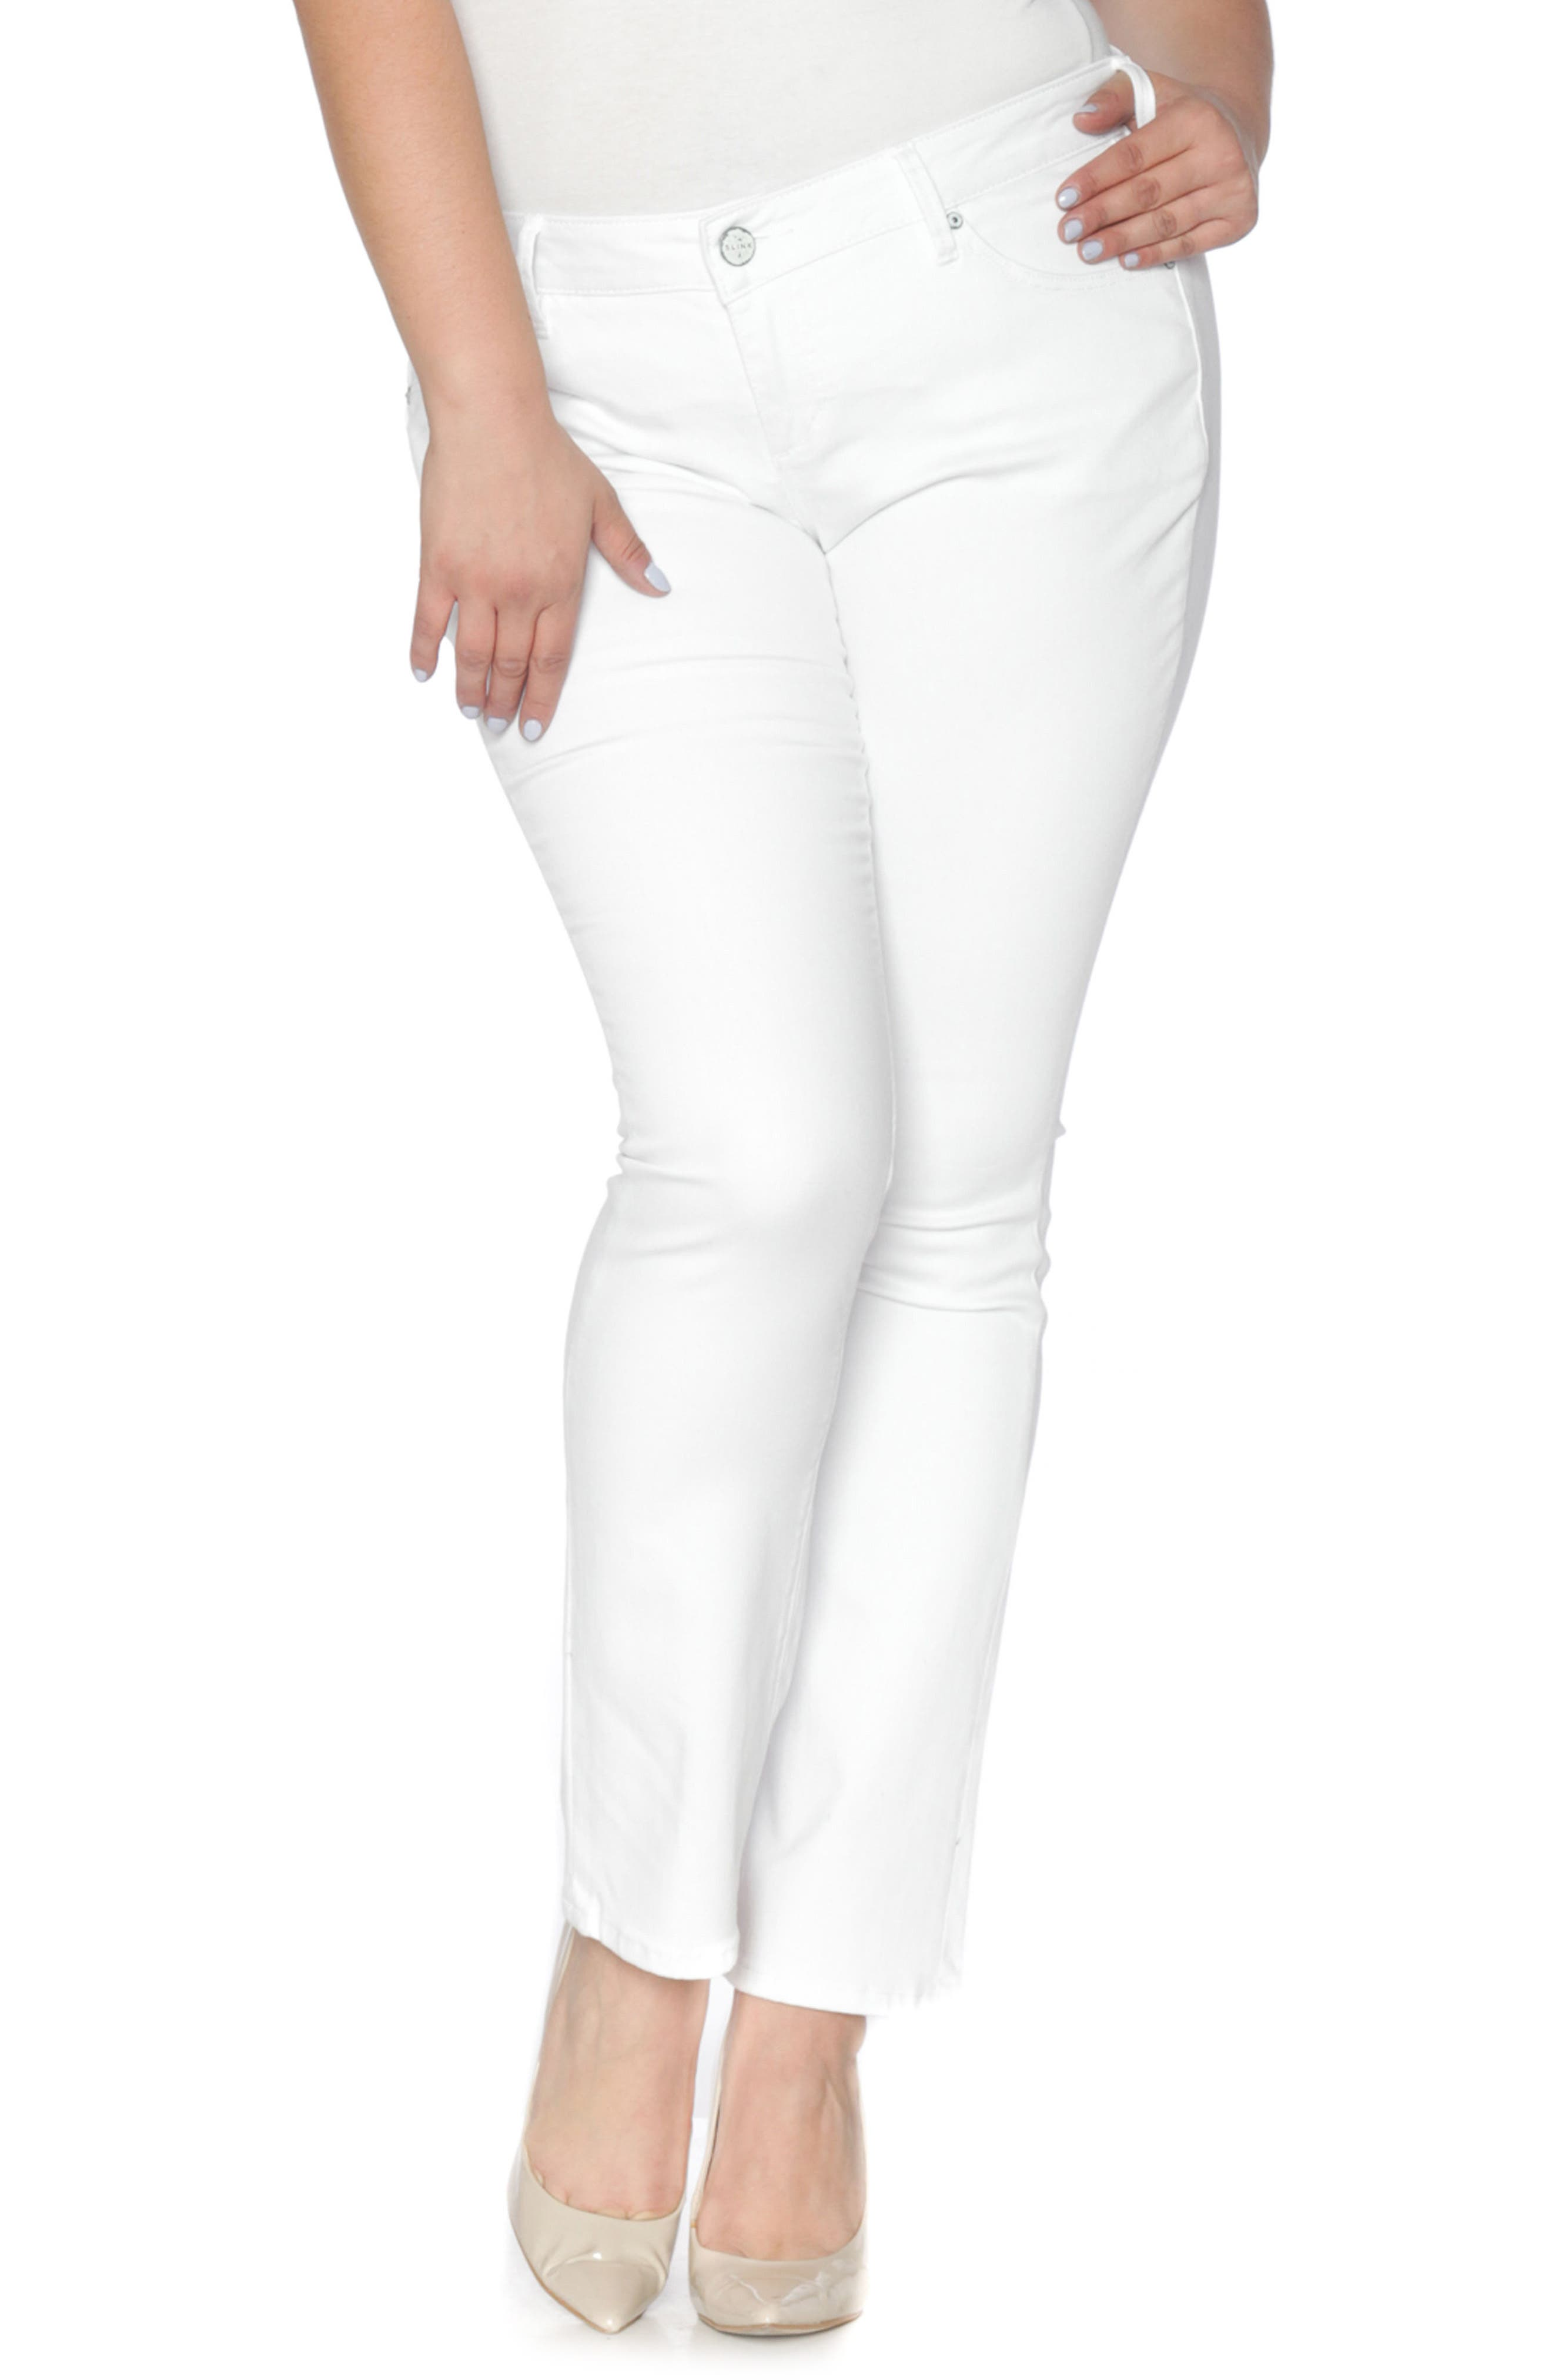 SLINK Jeans Stretch Straight Leg Jeans (Plus Size)